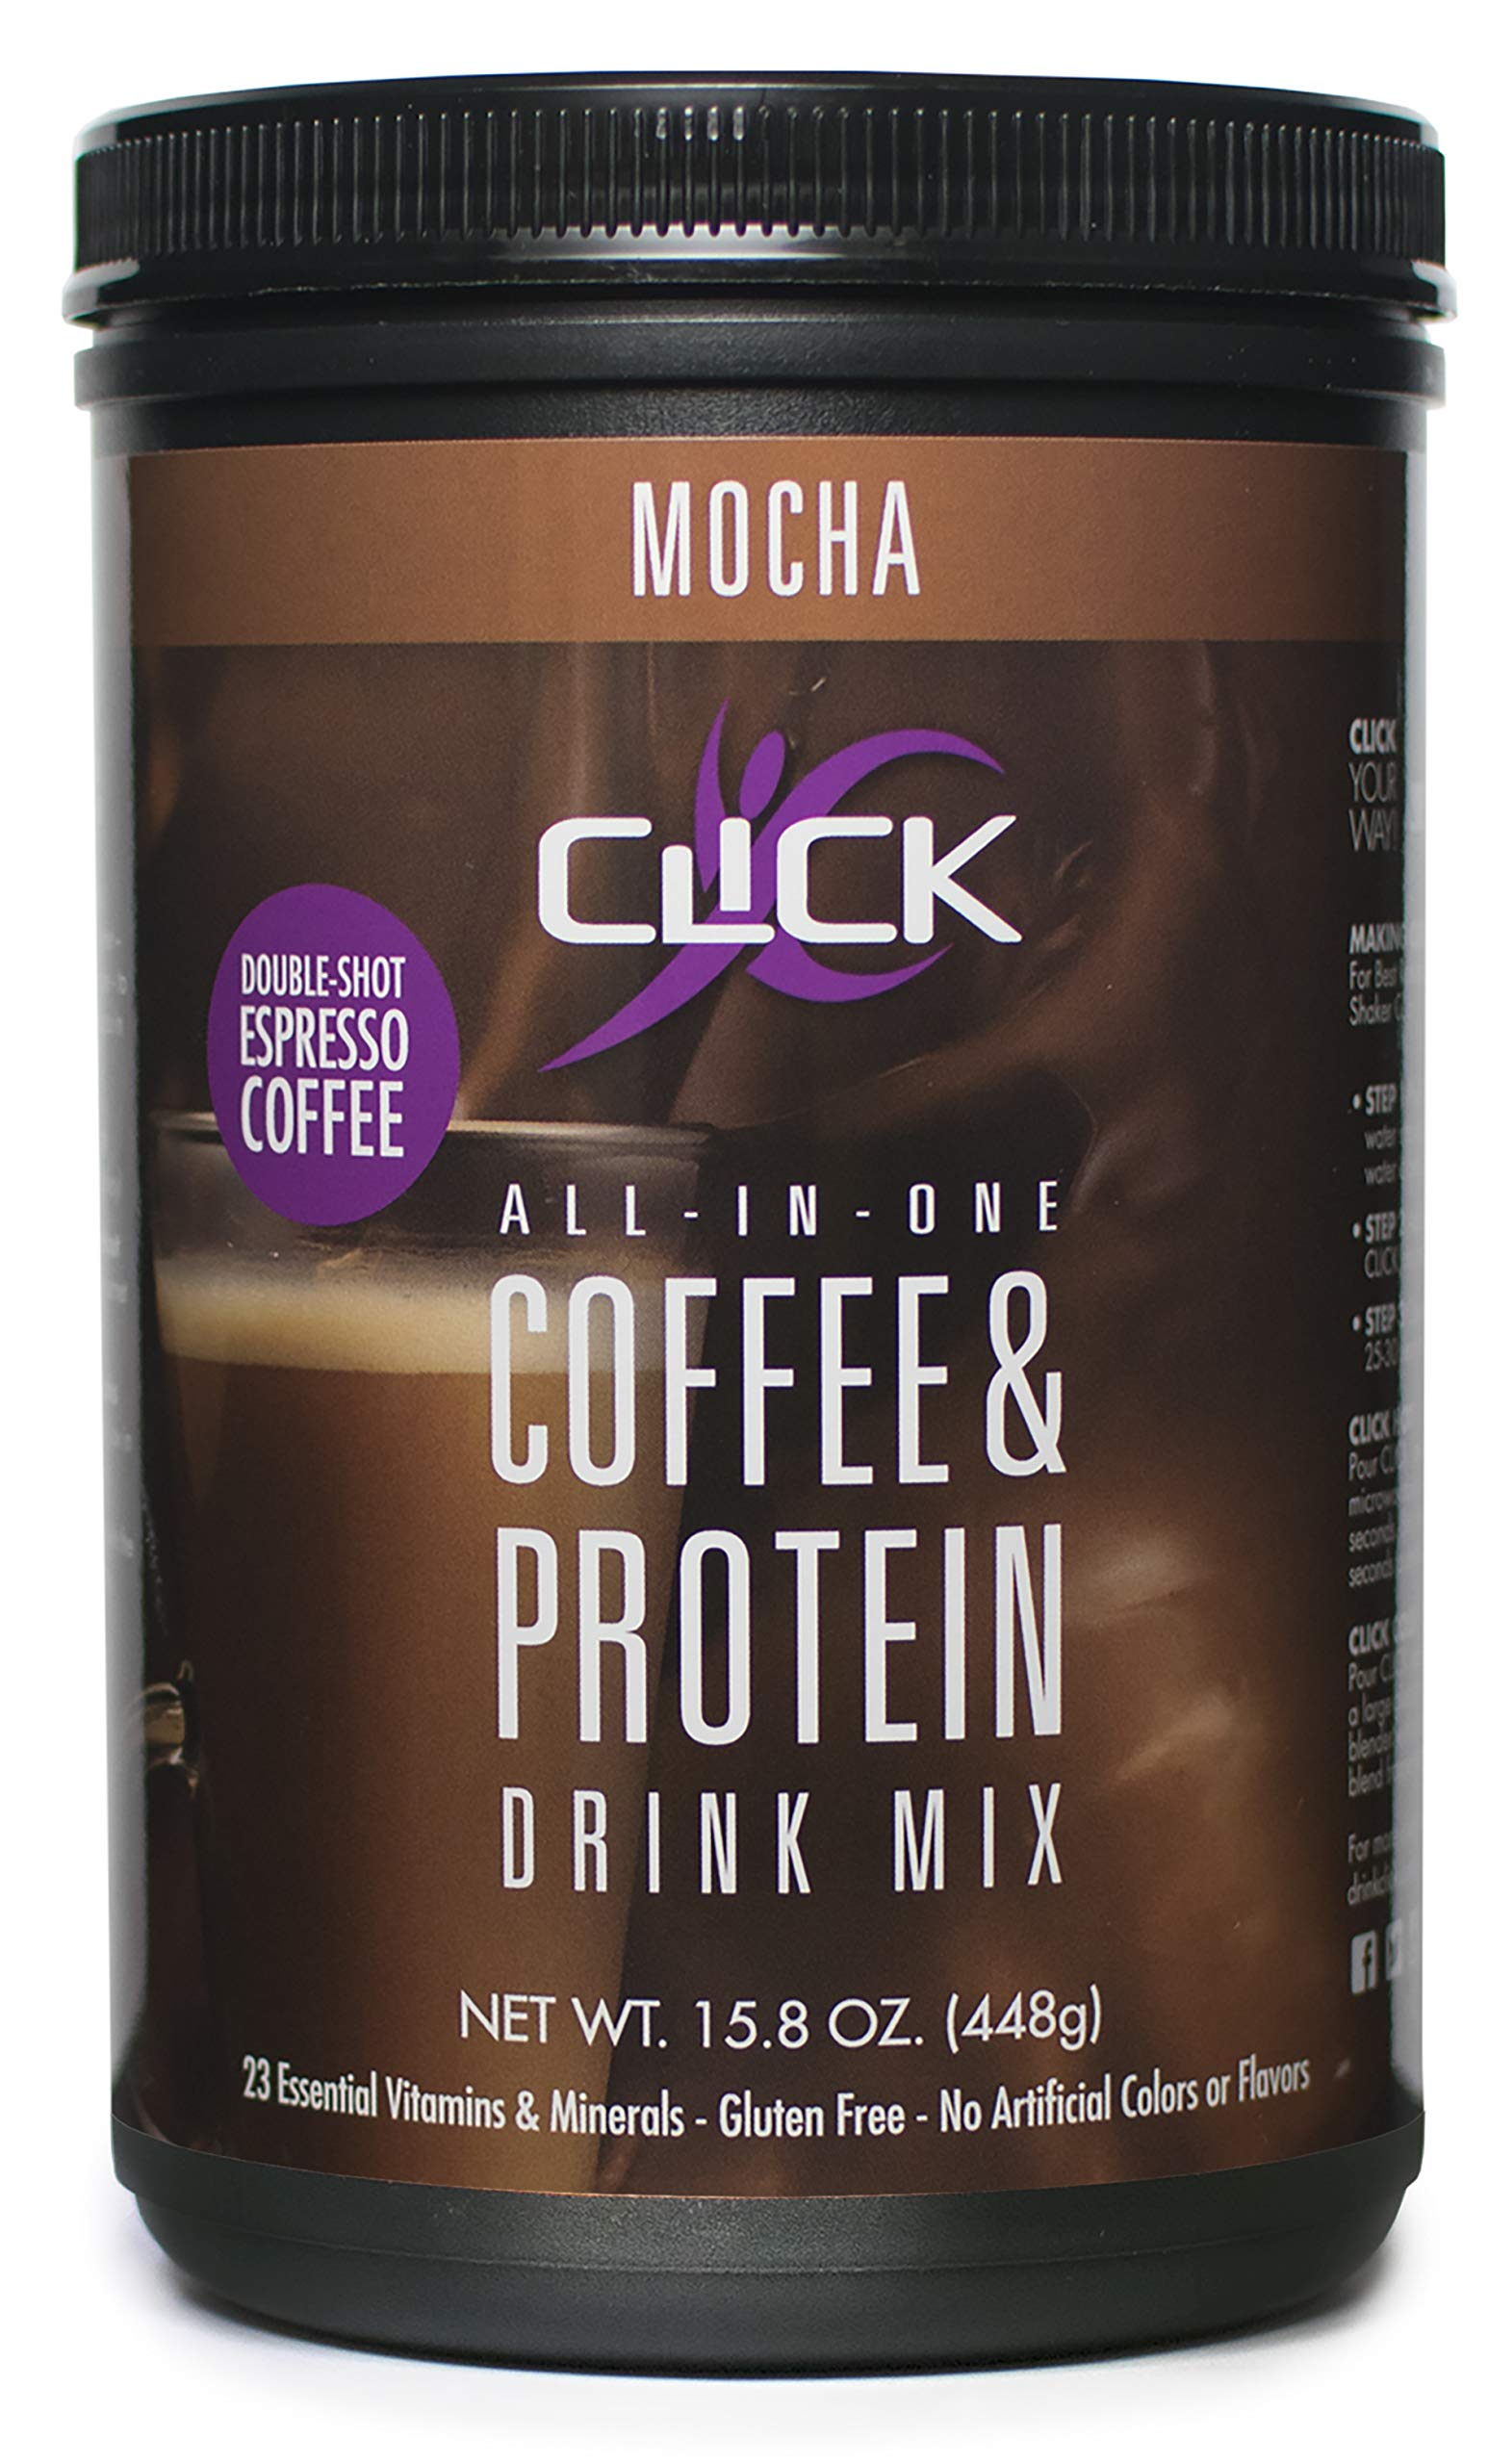 CLICK All-in-One Protein & Coffee Meal Replacement Drink Mix, Mocha, 15.8 Ounce by CLICK